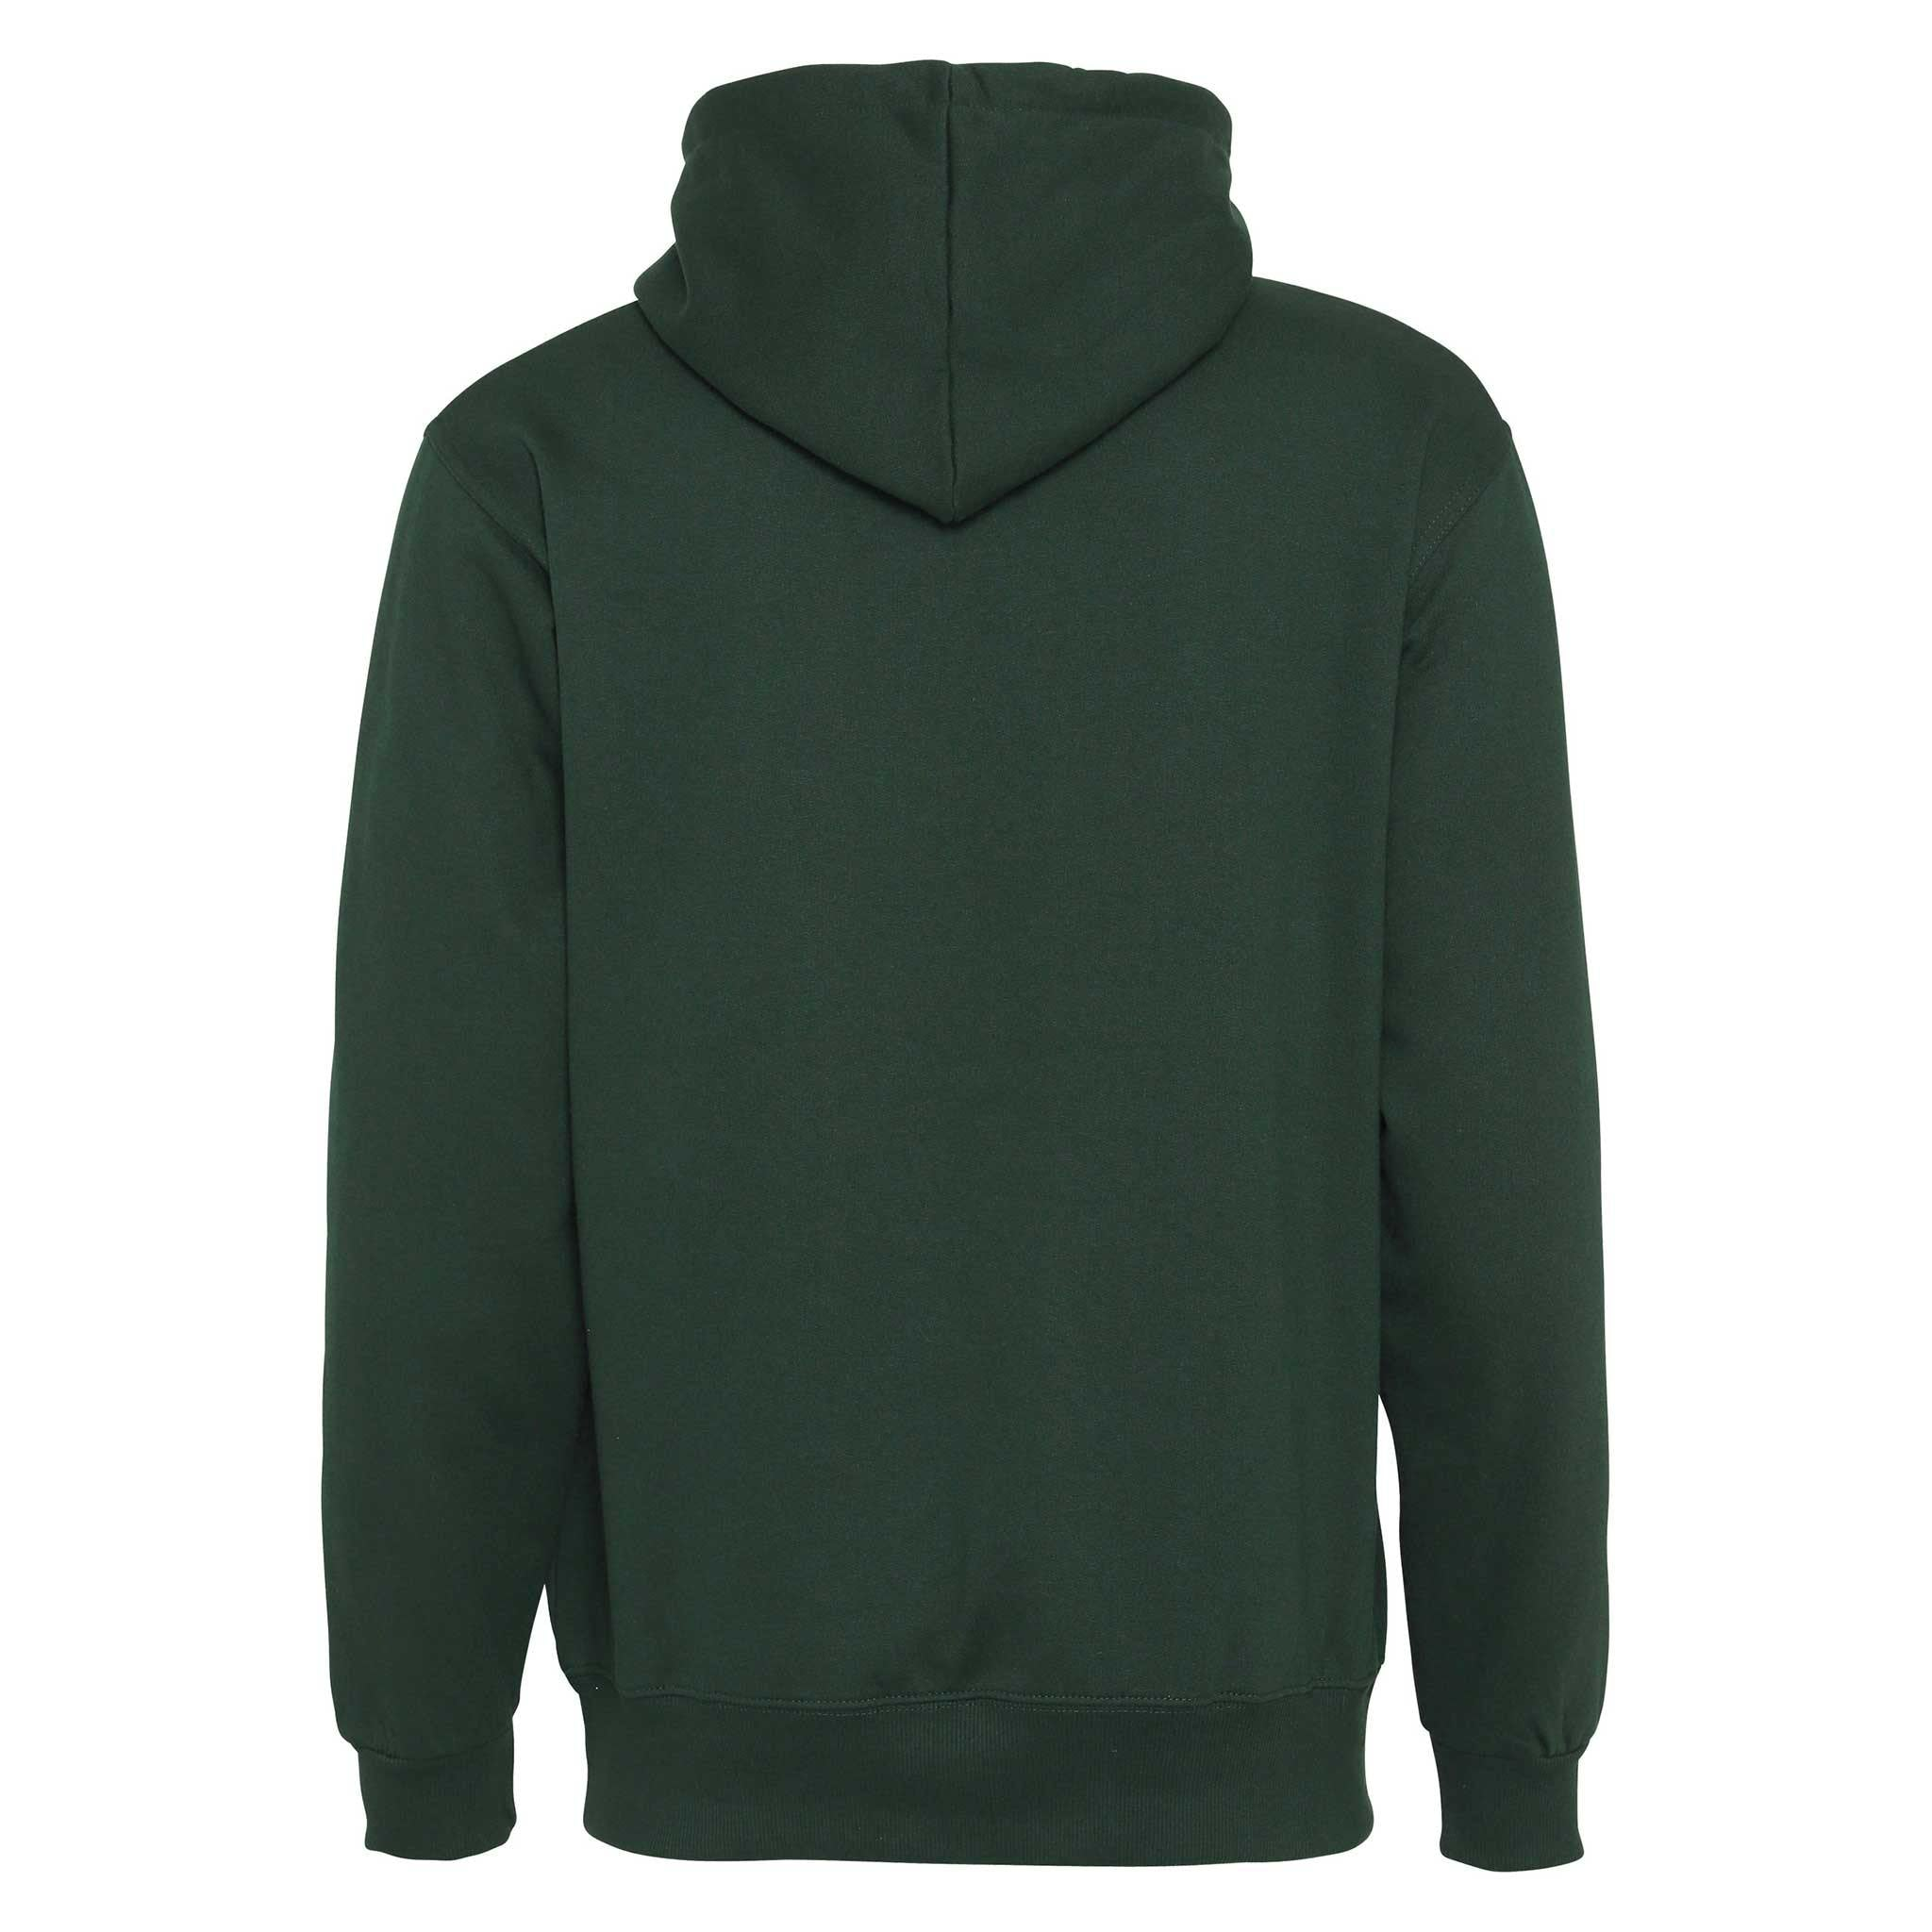 Boots Bottle Green Hoodie